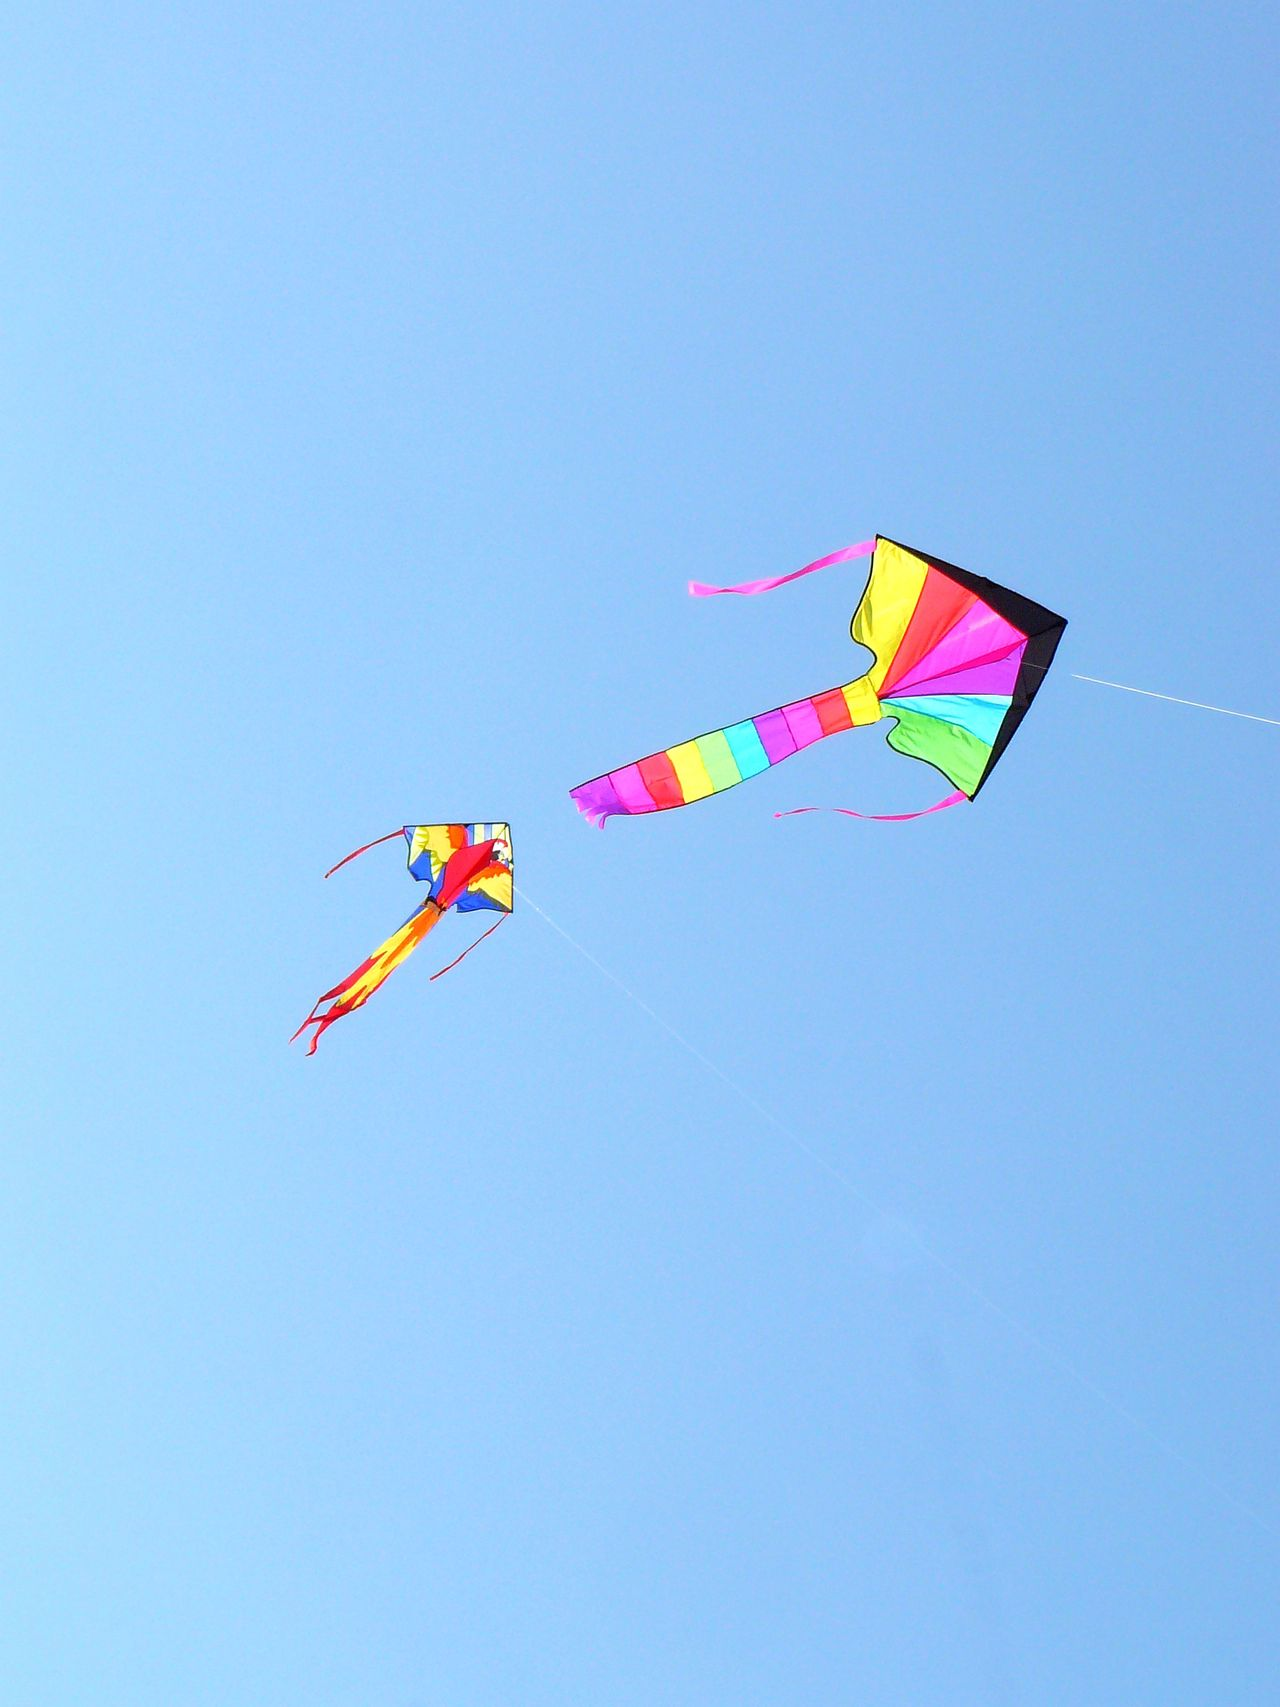 Flying Free_Rondeau, Erieau {Ontario] ~ Blue Childhood Clear Sky Copy Space Day Erieau Flying Flying A Kite Flying High Flying In The Sky Fun Kite Kite - Toy Kite Flying Low Angle View Mid-air Multi Colored Nature No People Ontario, Canada Outdoors Rondeau Sky The Great Outdoors - 2017 EyeEm Awards Toy